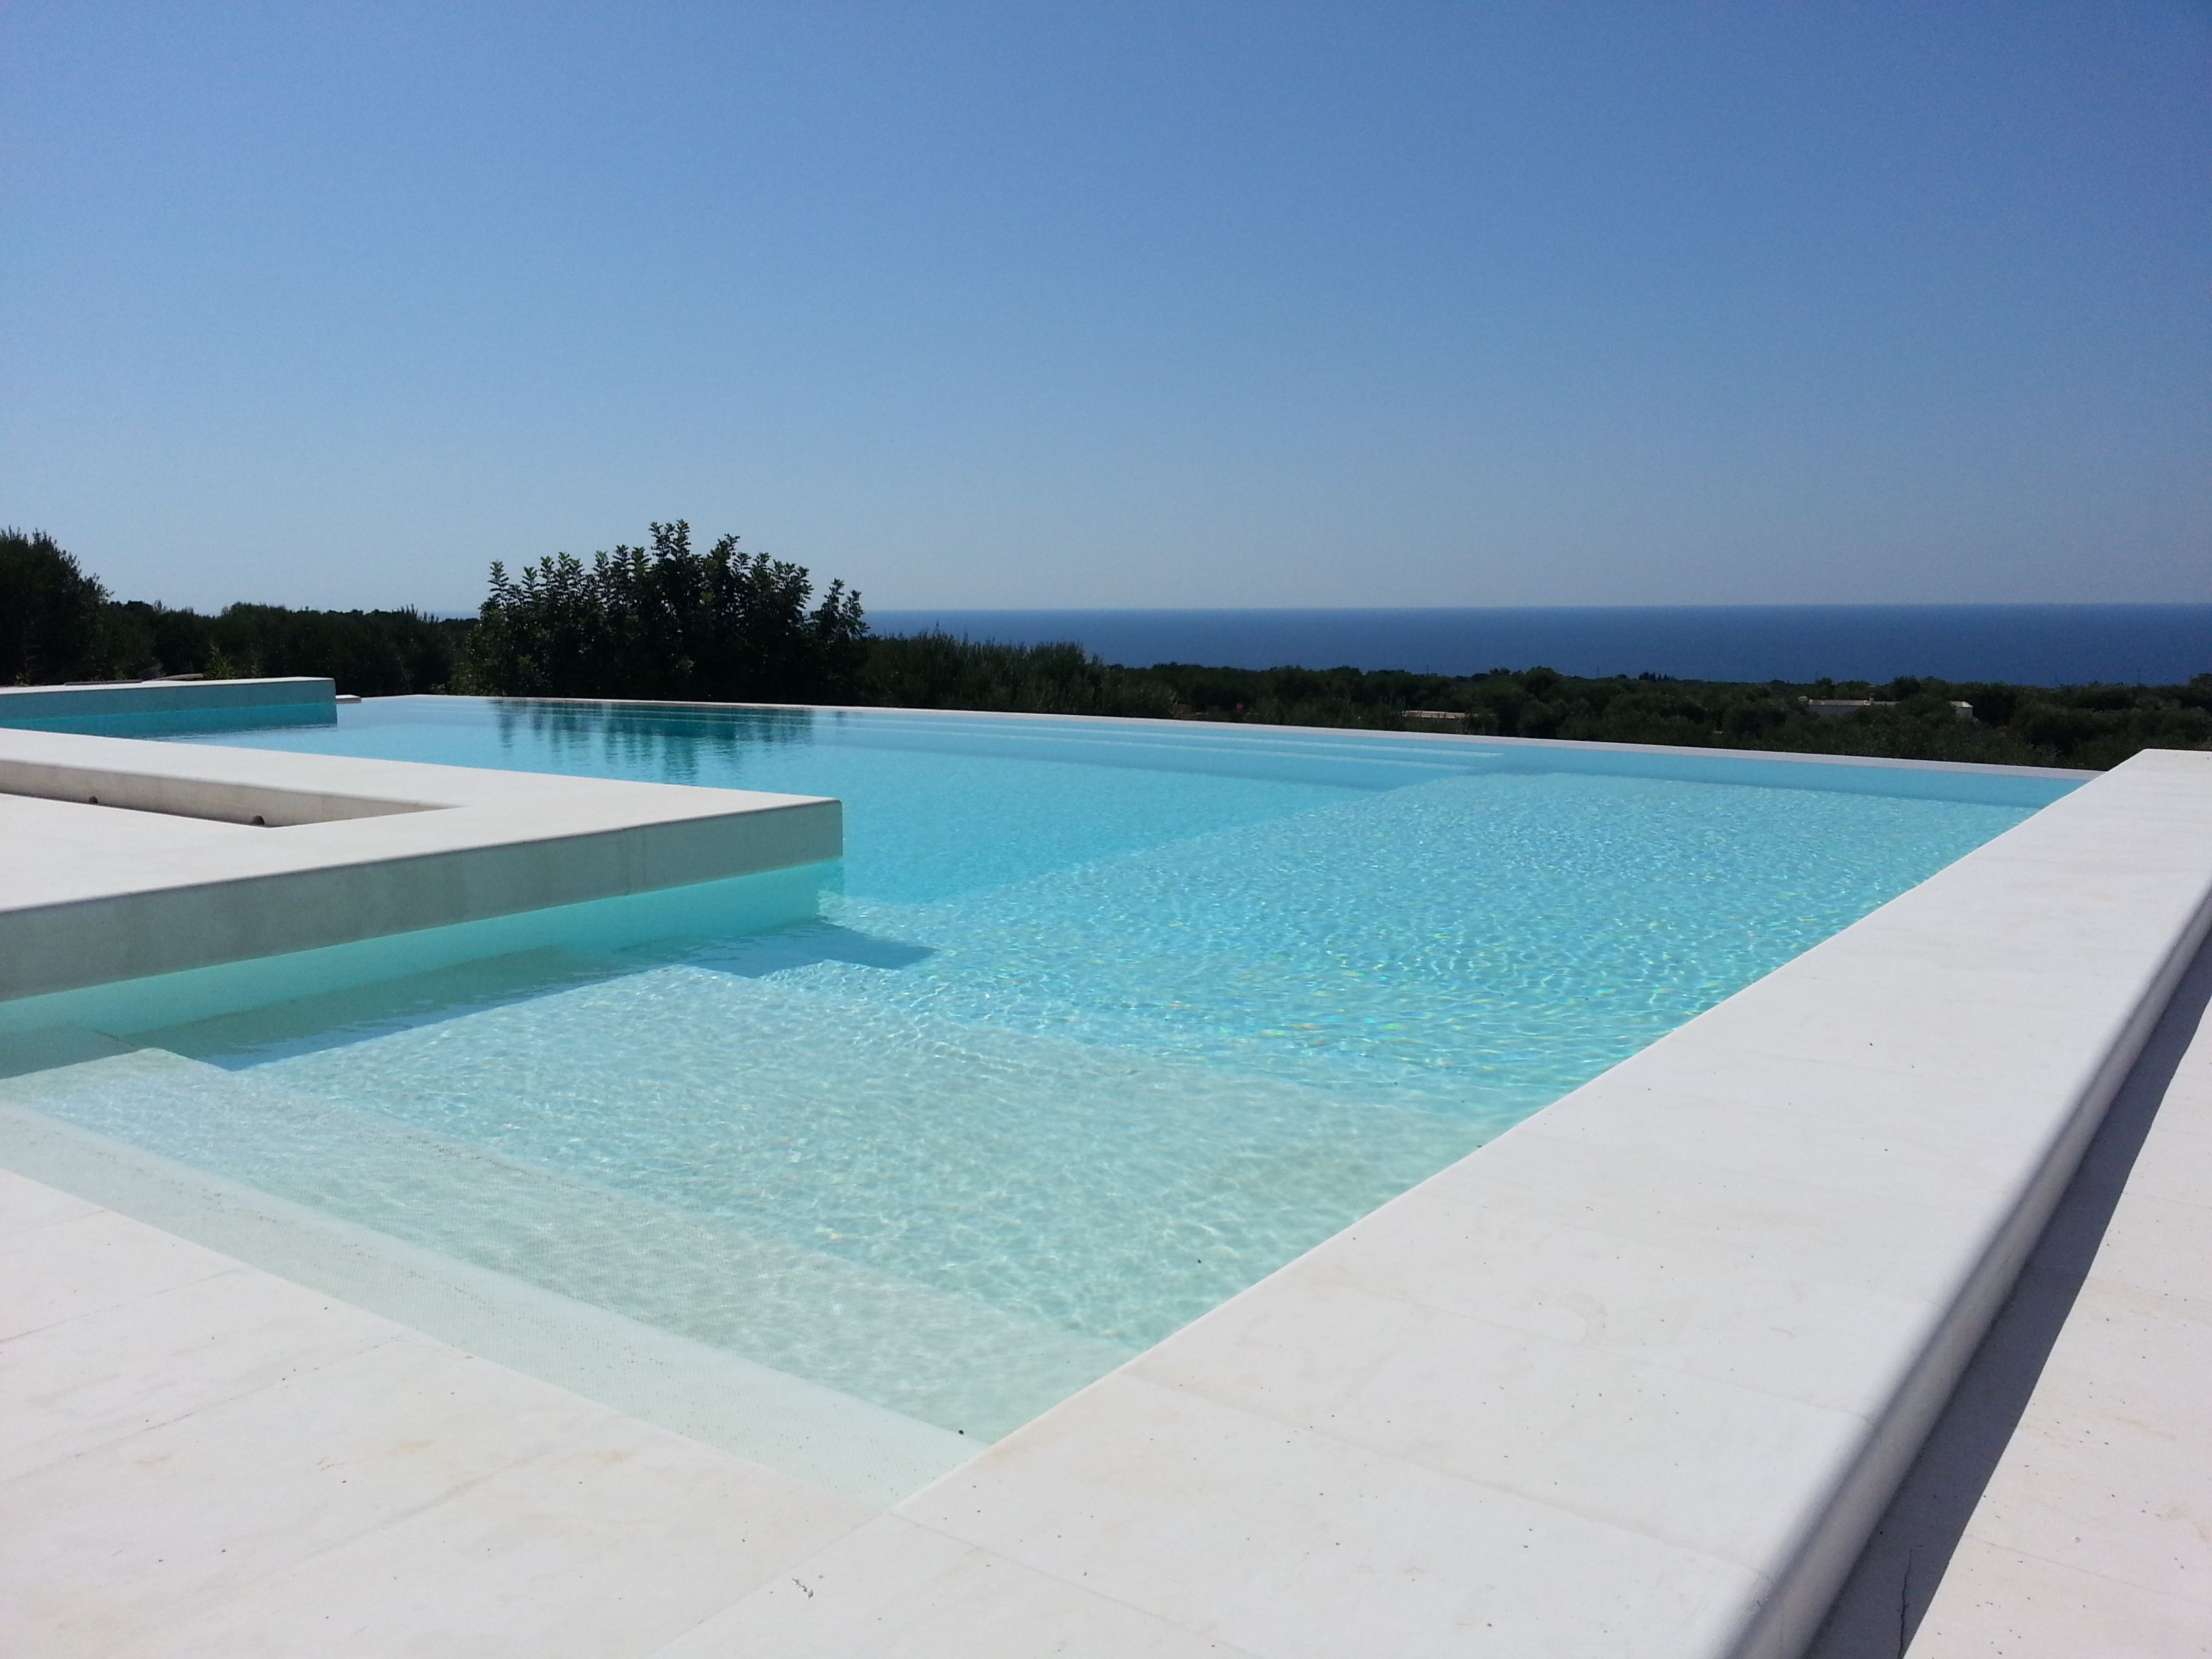 Piscina Design Piscina Design Sfioro Living In Luxury Outside Pool Pool